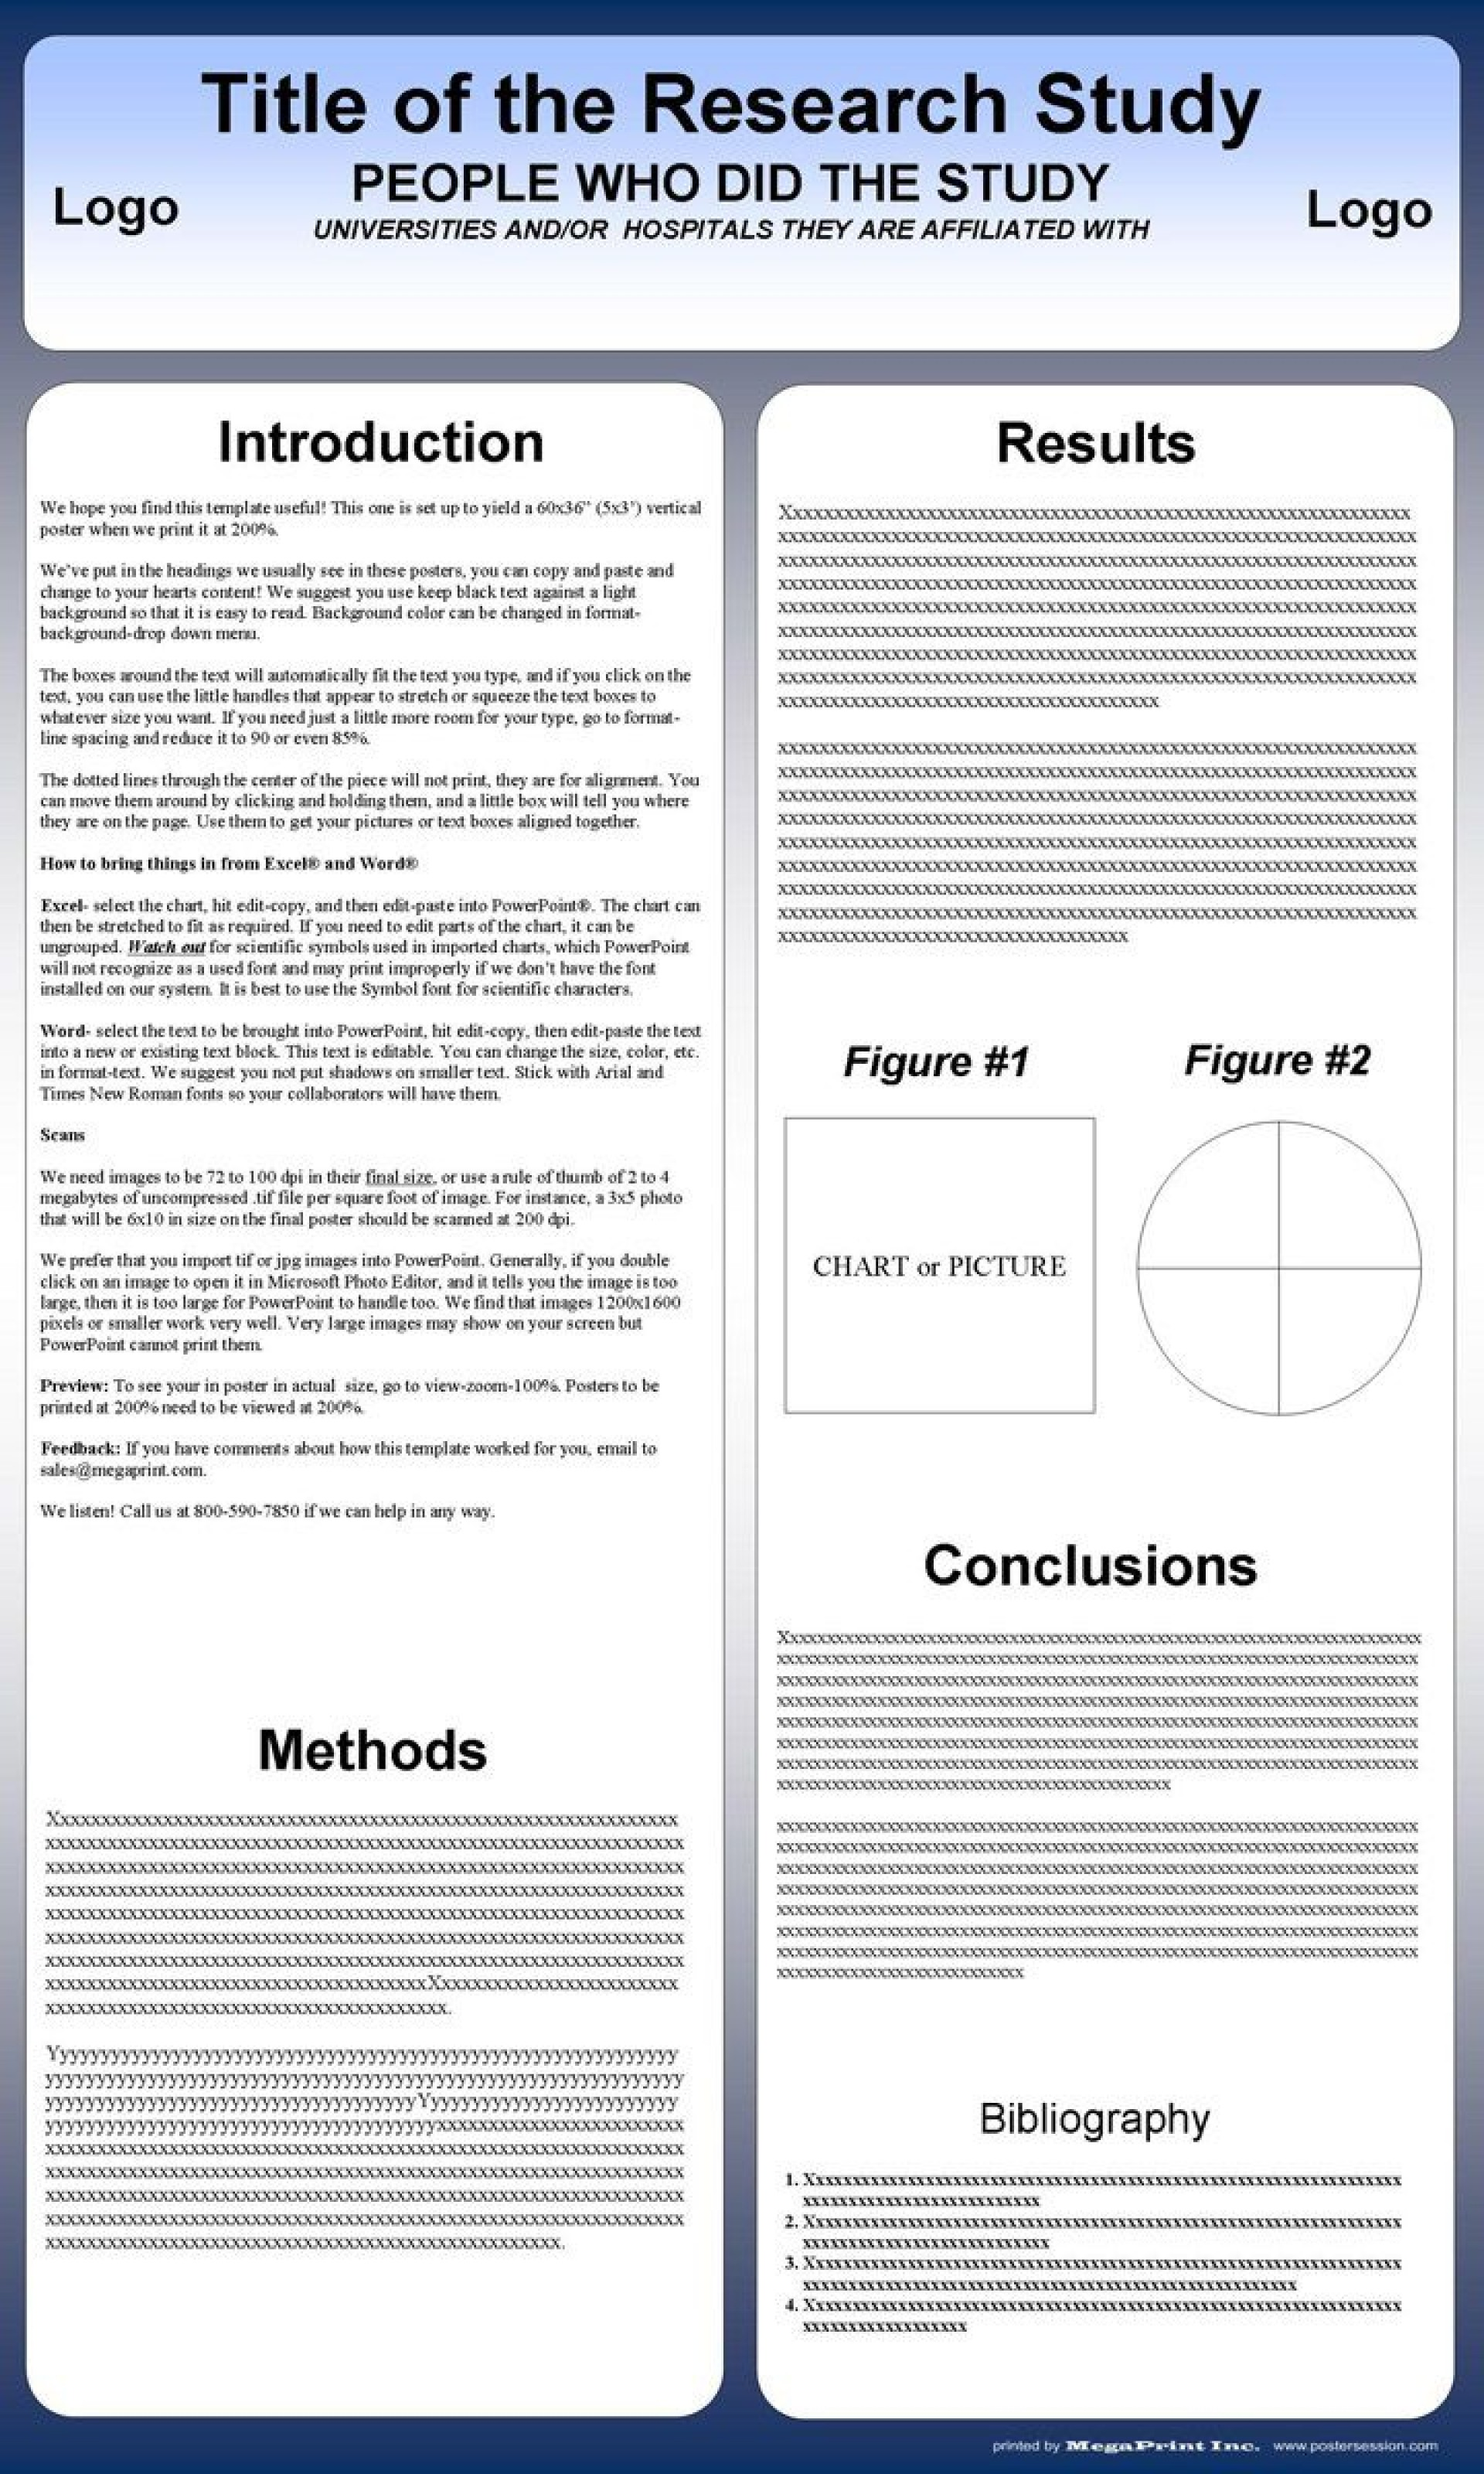 001 Stunning Scientific Poster Presentation Template Free Download Image 1920